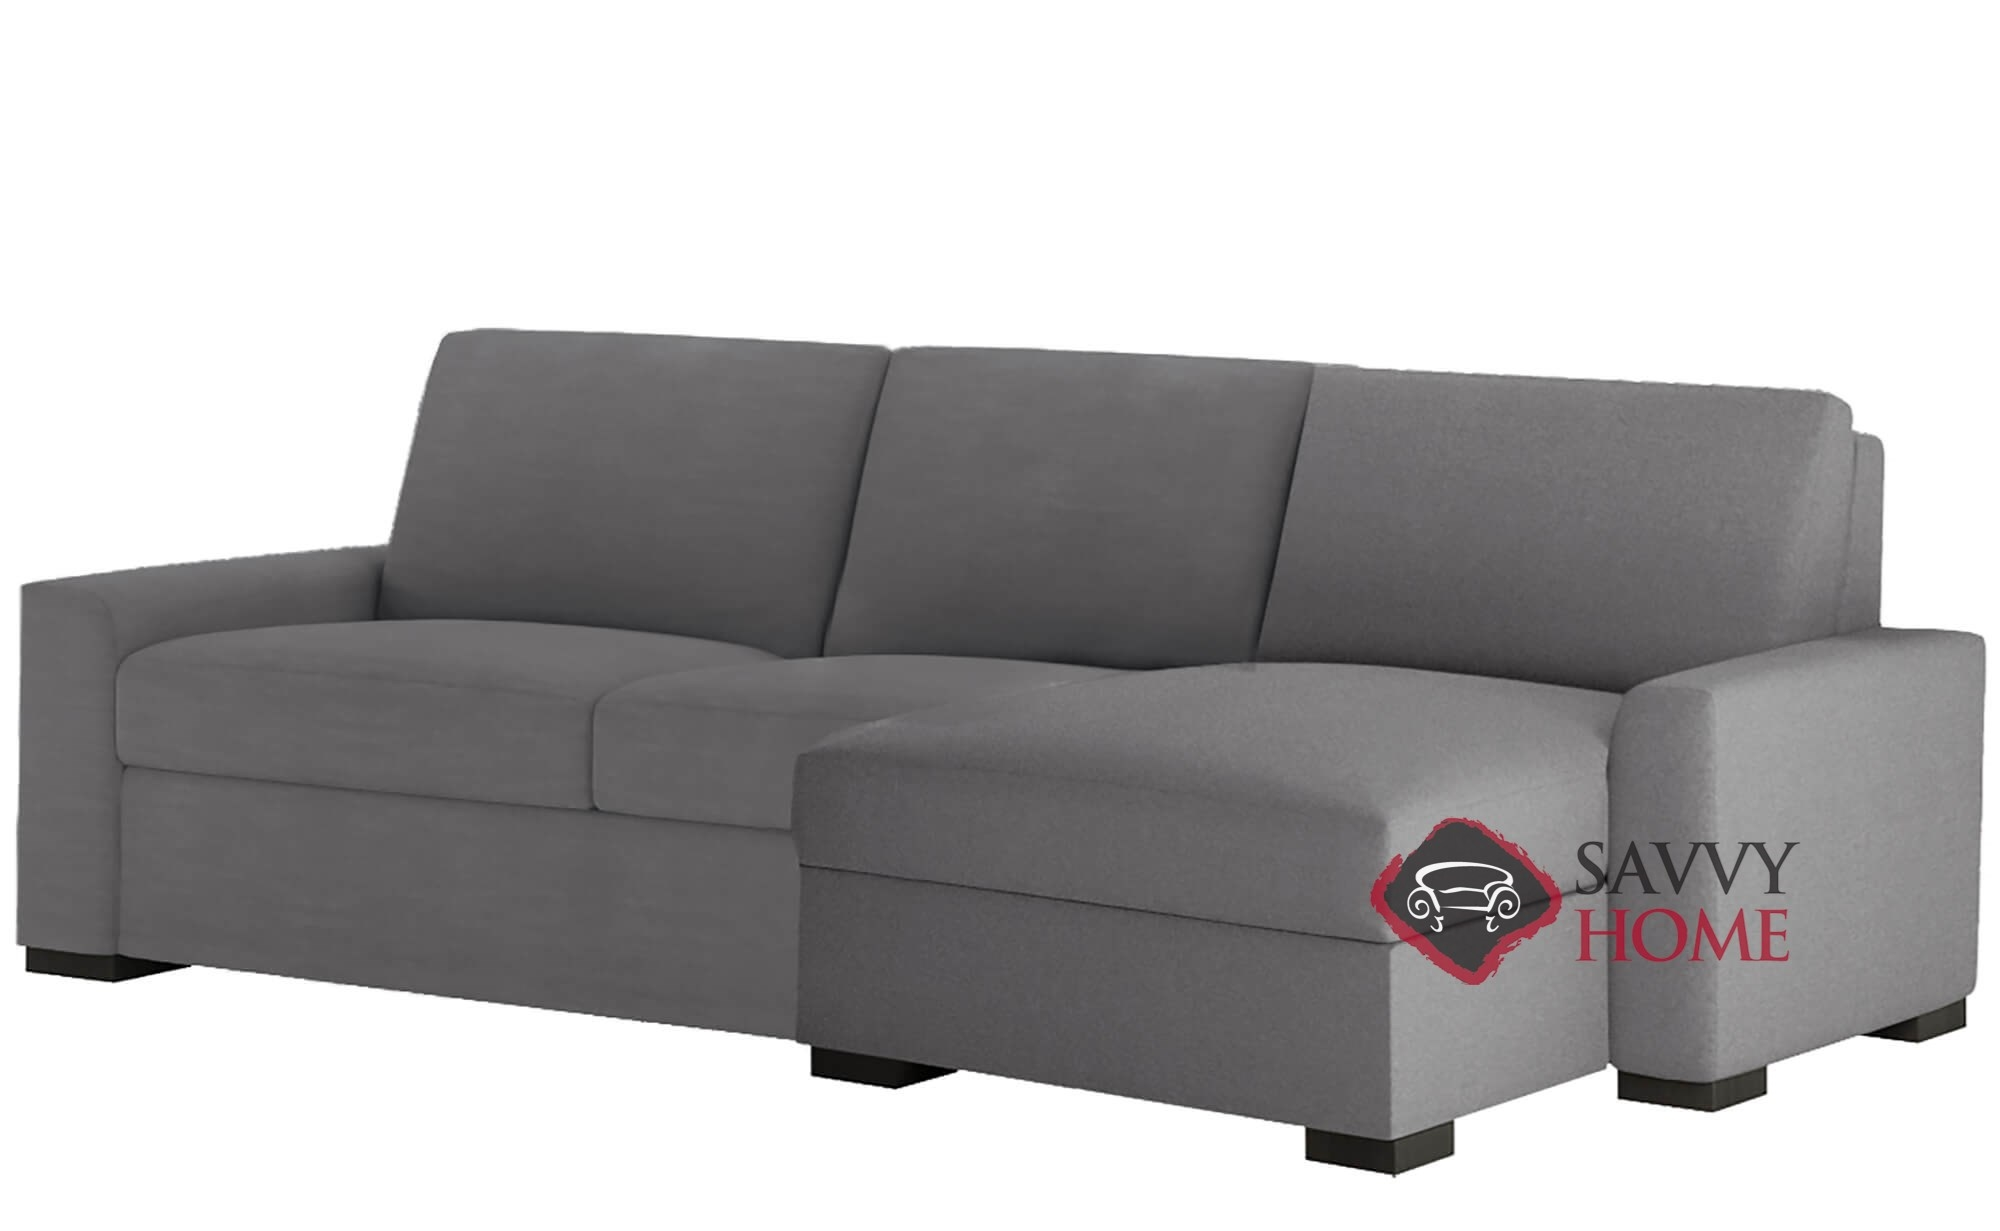 Olson Fabric Sleeper Sofas Queen By American Leather Is